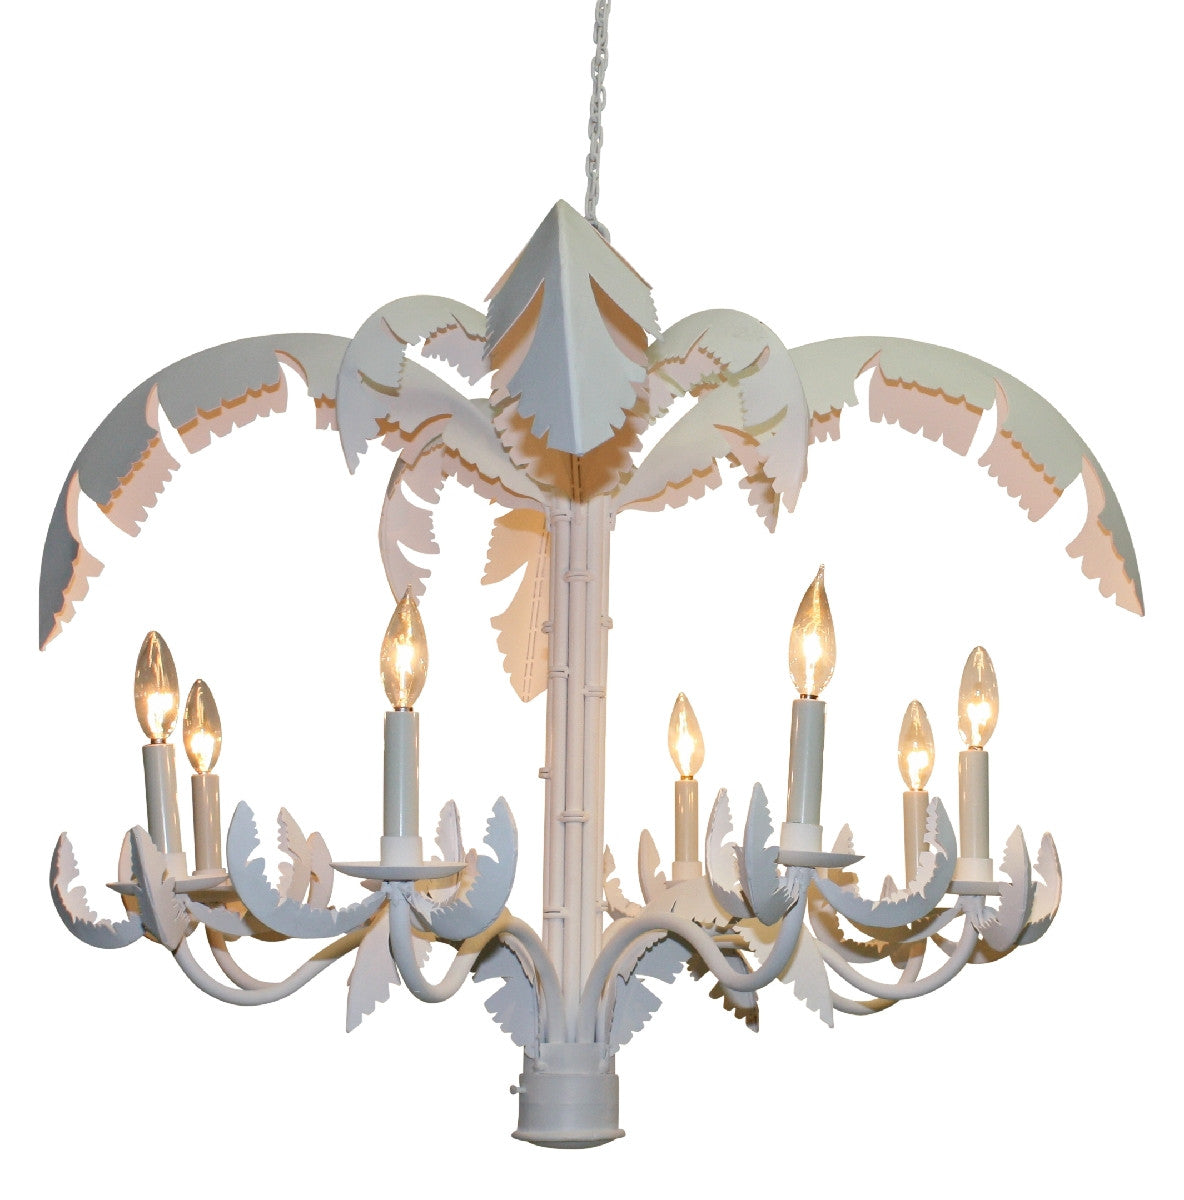 Palm Beach Chandelier - Carleton Varney